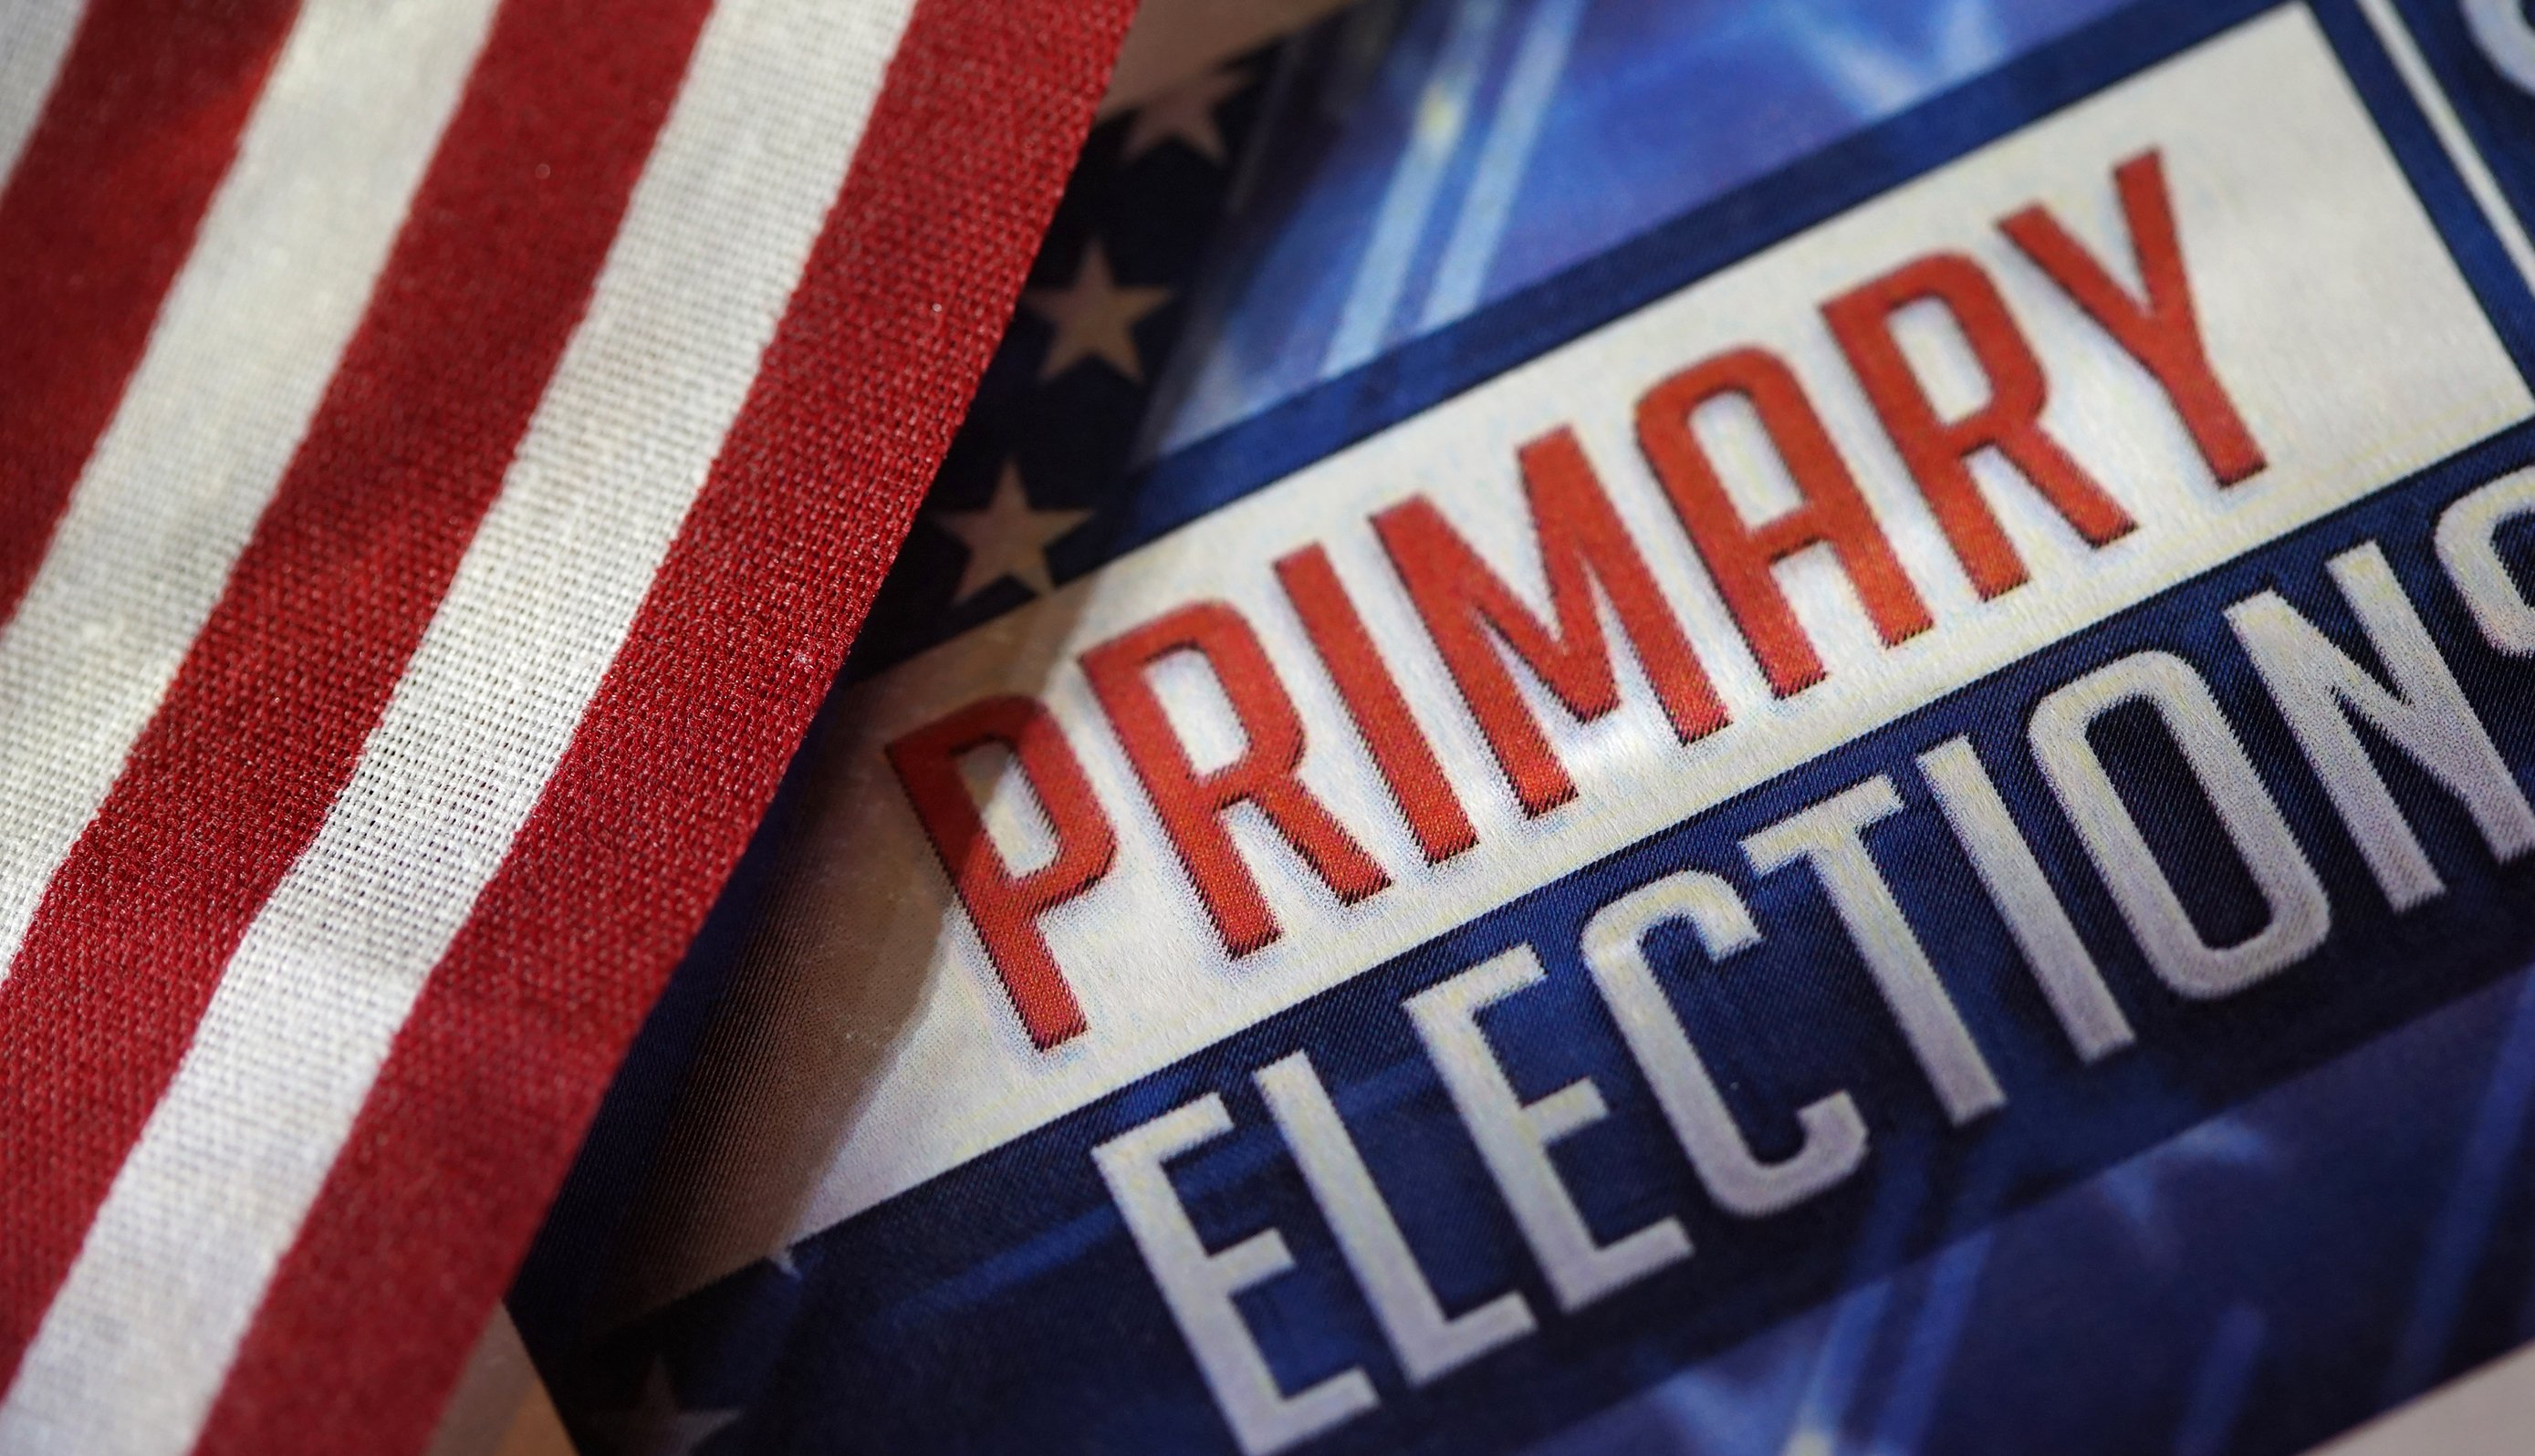 shot of word primary election